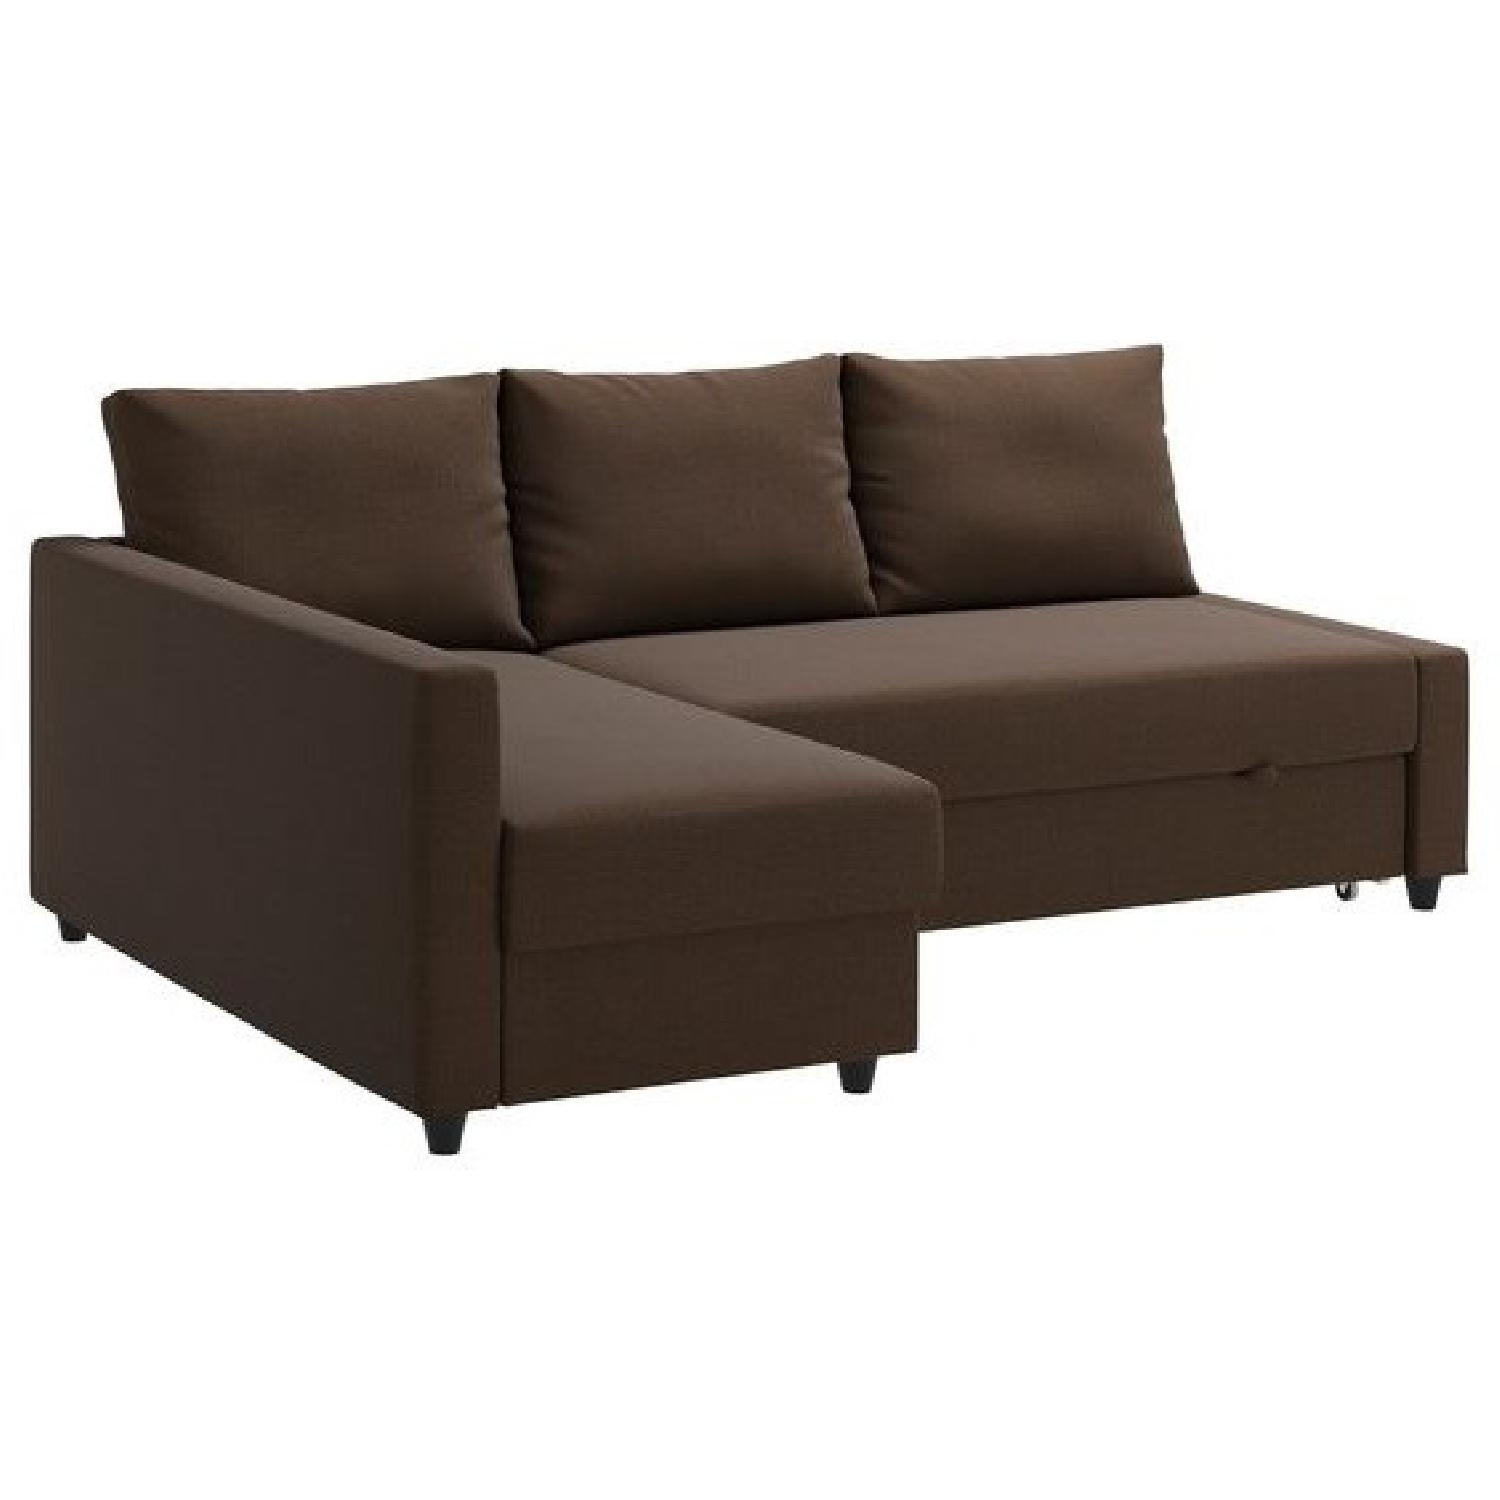 Ikea Skiftebo Brown Sleeper Sectional Sofa w/ Storage